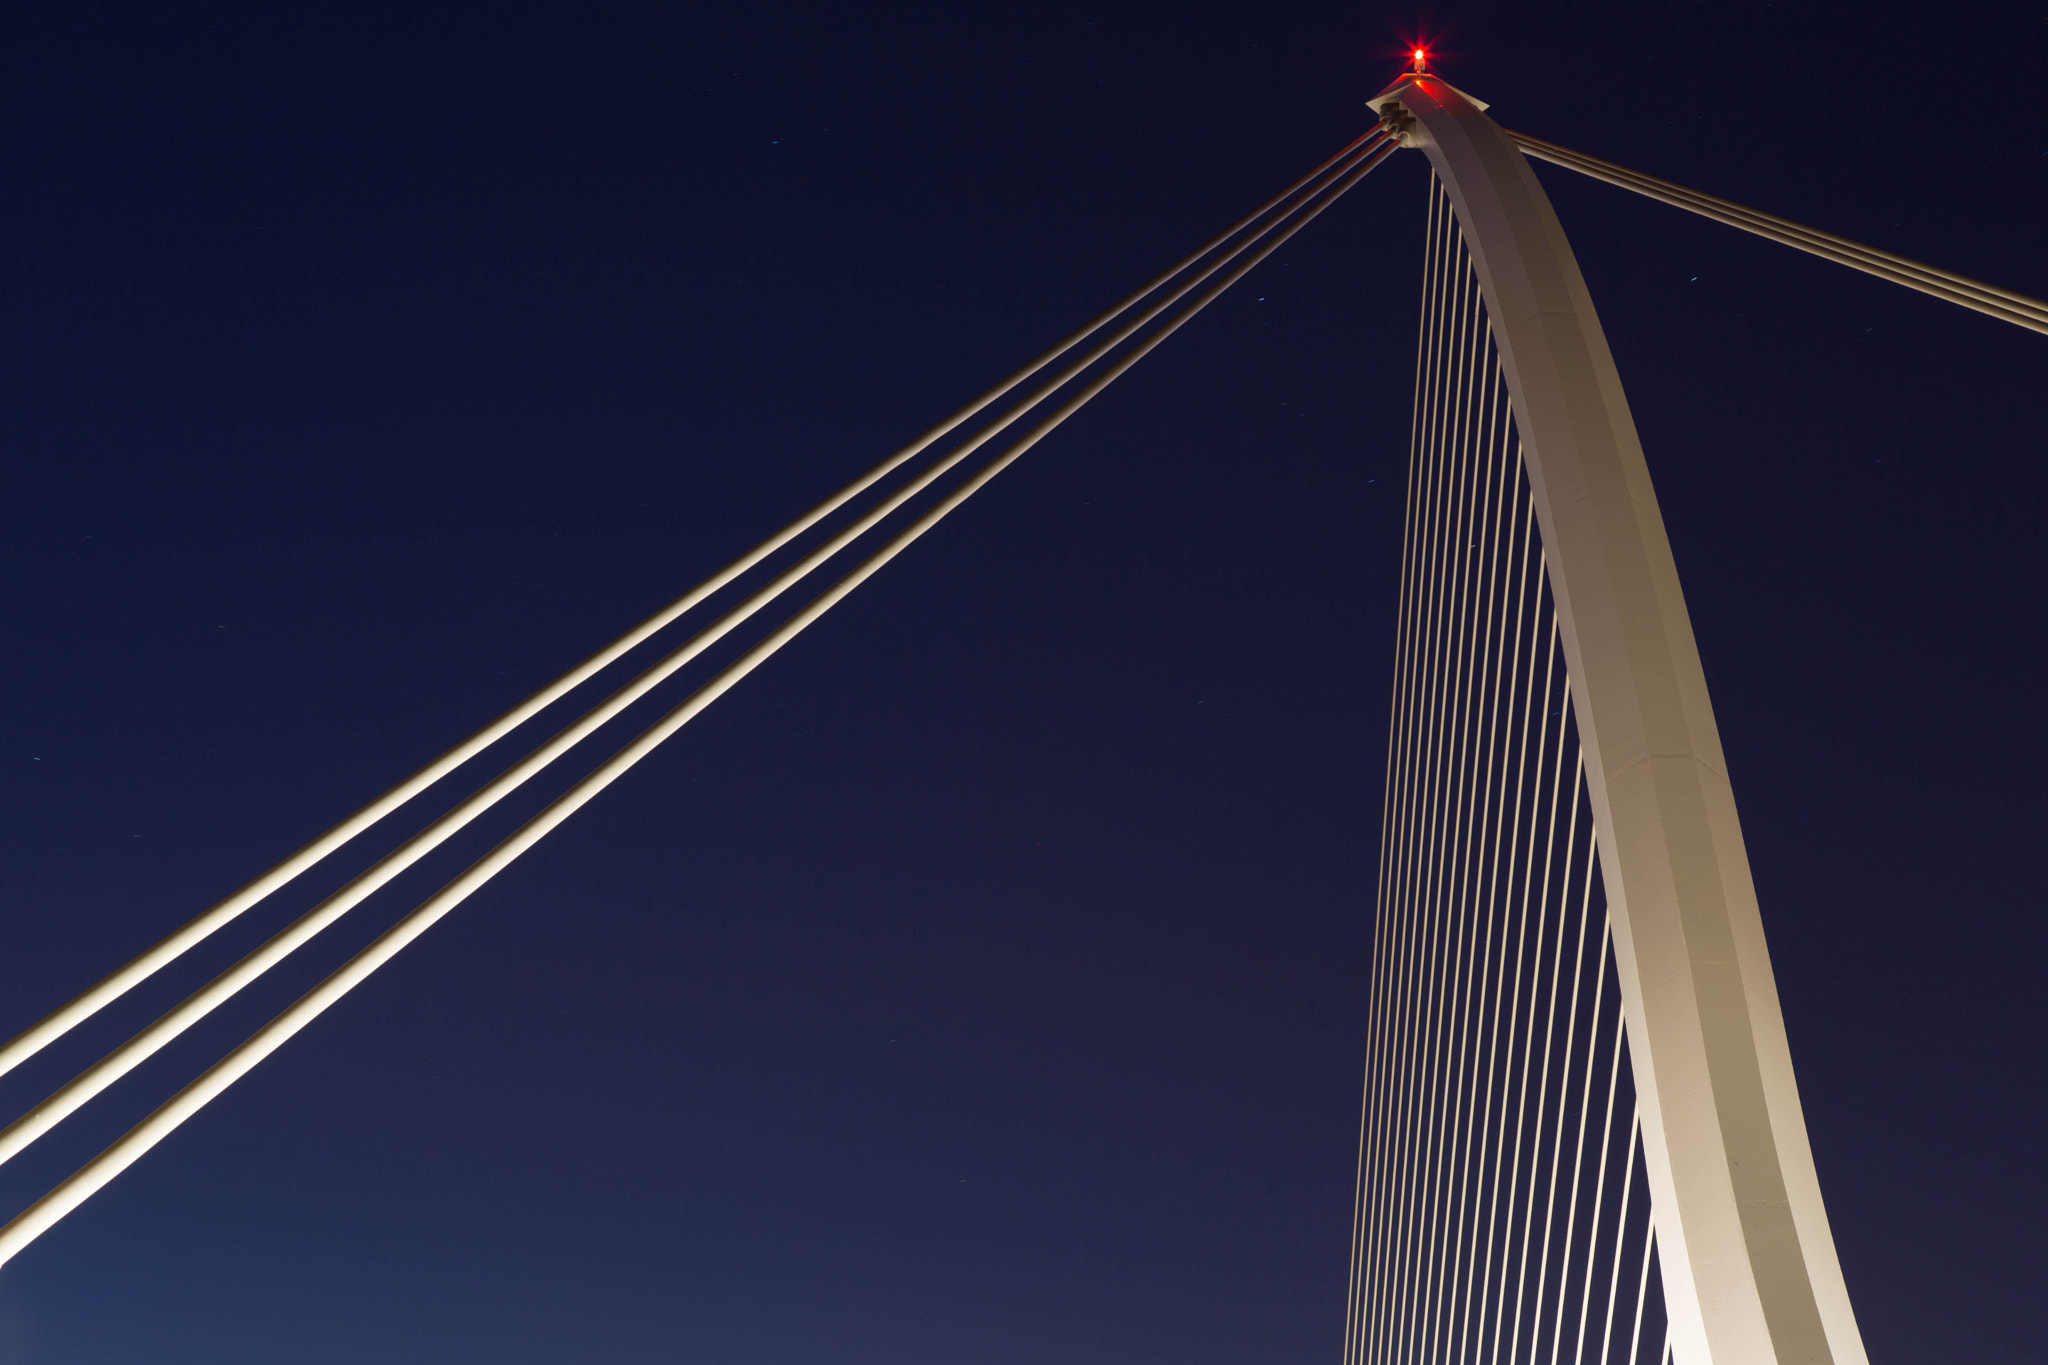 Photograph Abstract Bridge by Tony Northrup on 500px